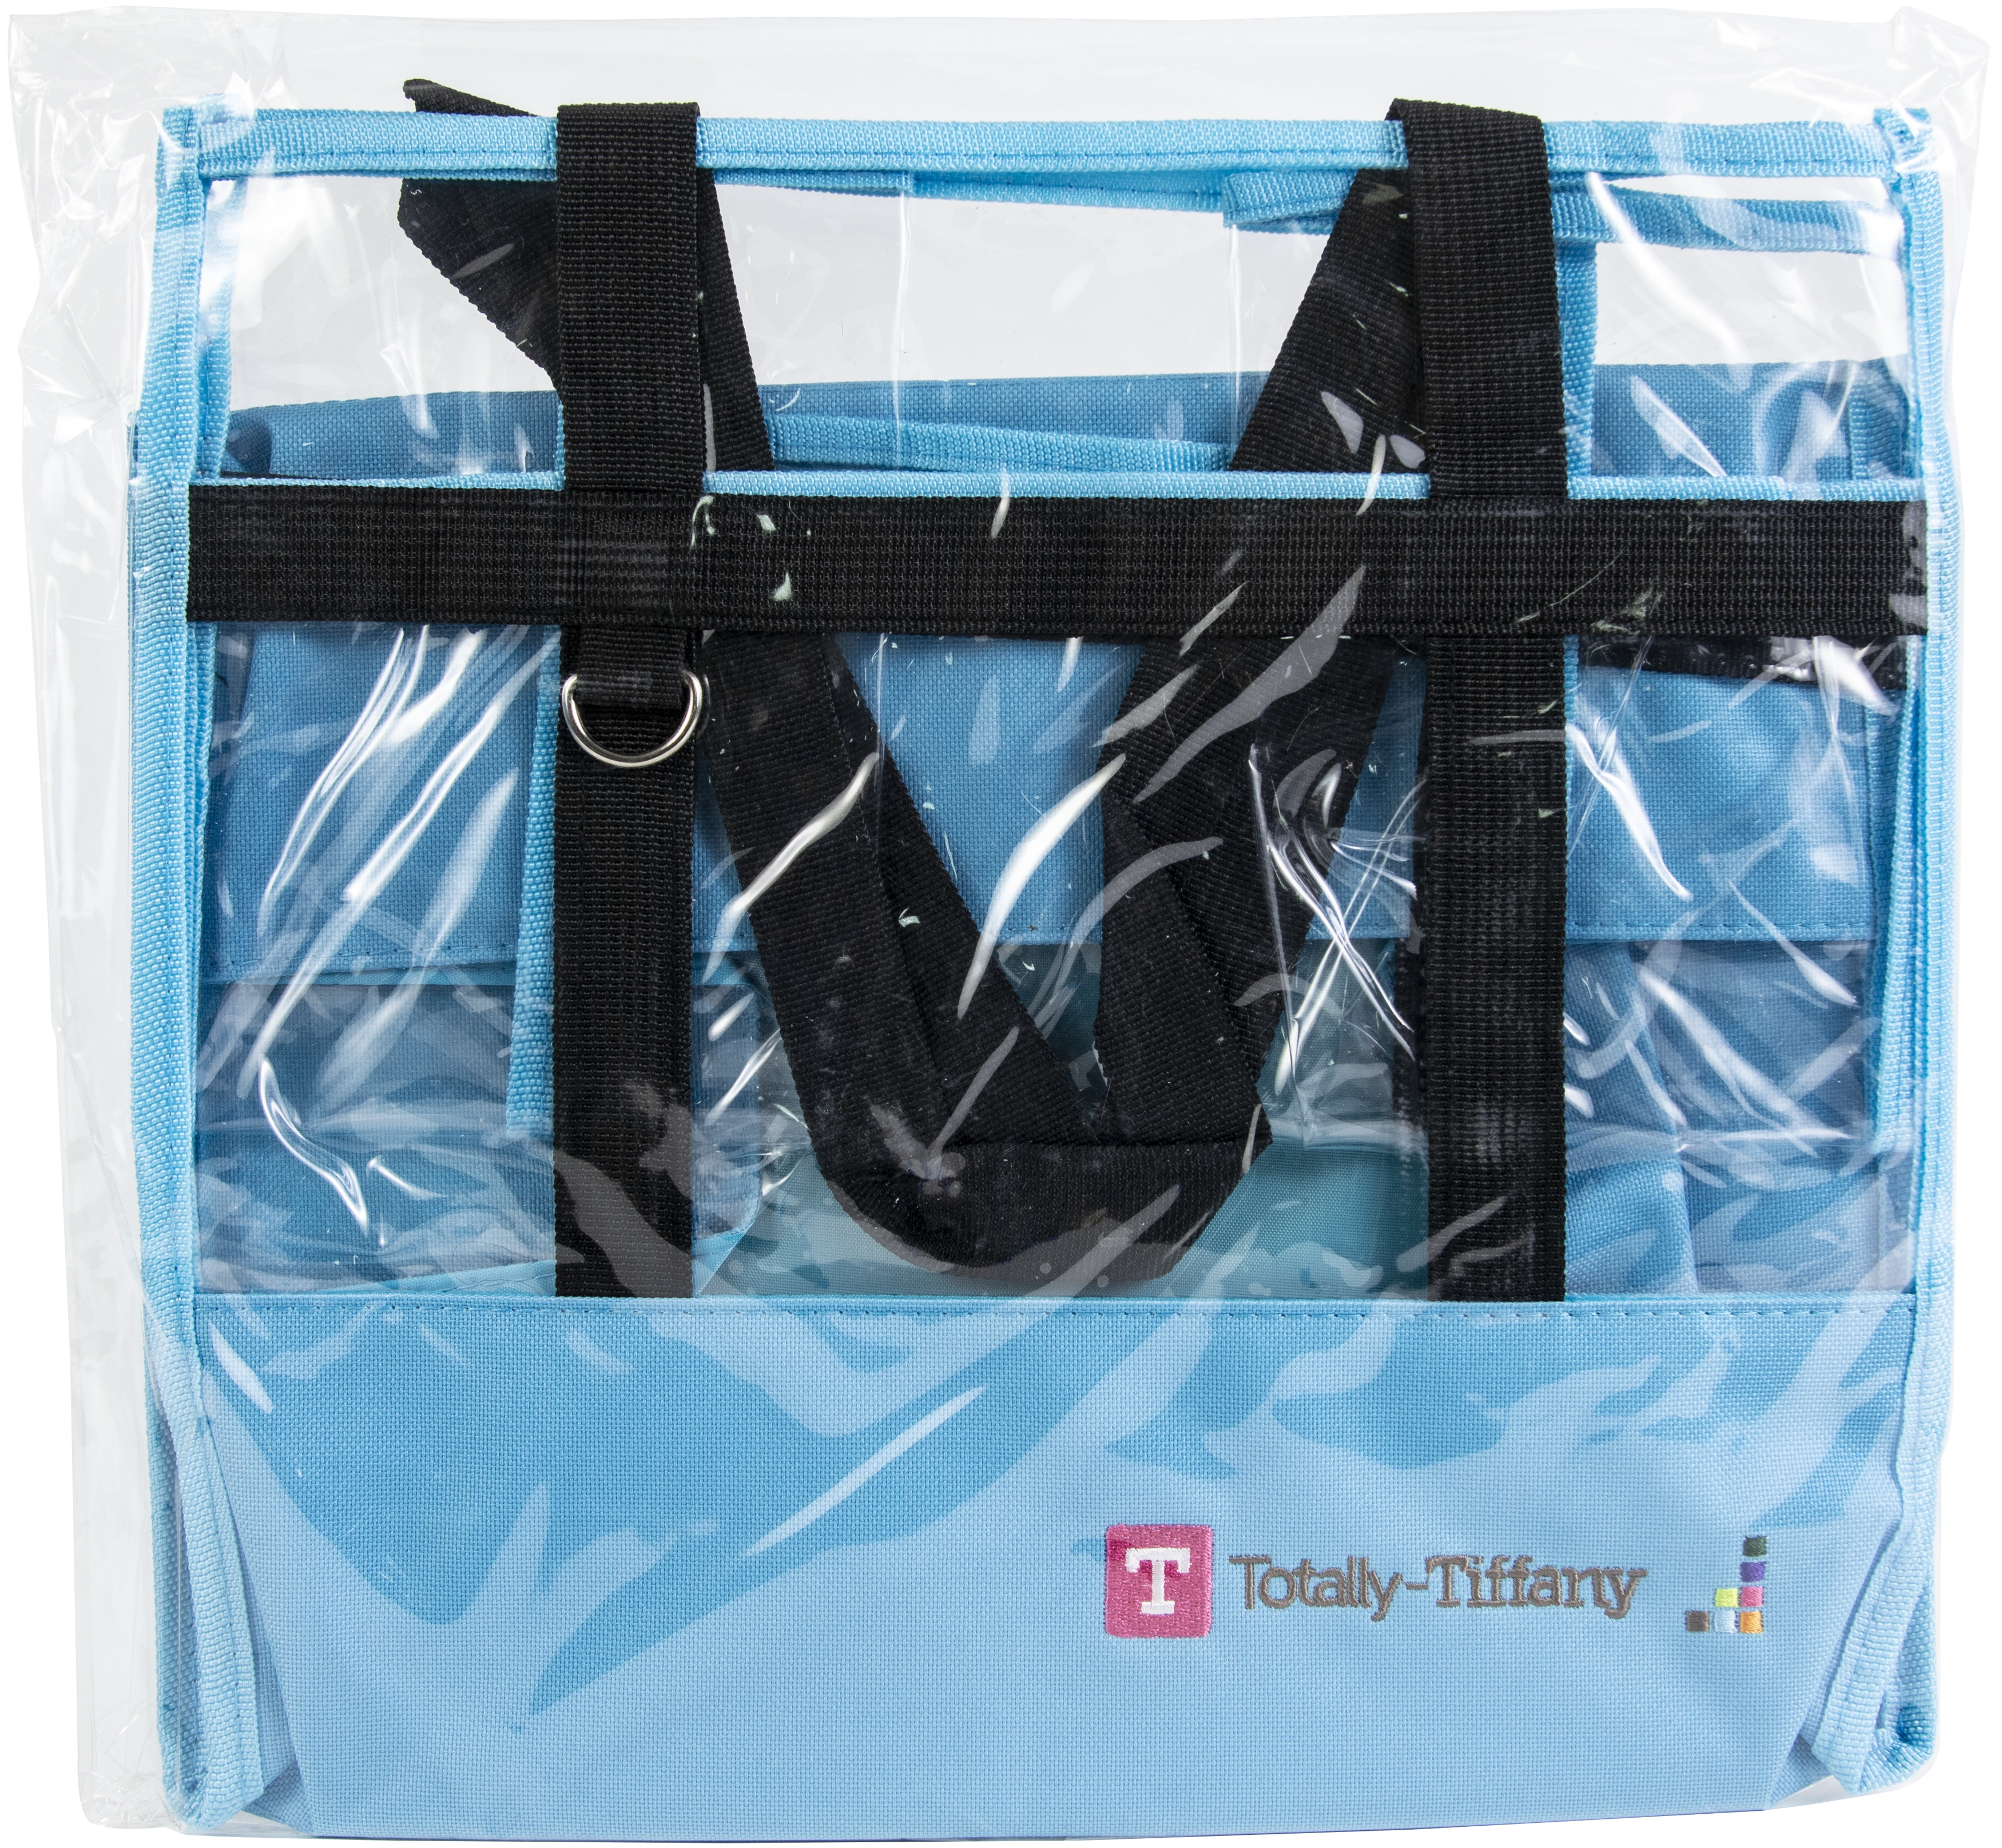 Totally-Tiffany Easy To Organize Buddy Bag Lois 2.0-Turquoise